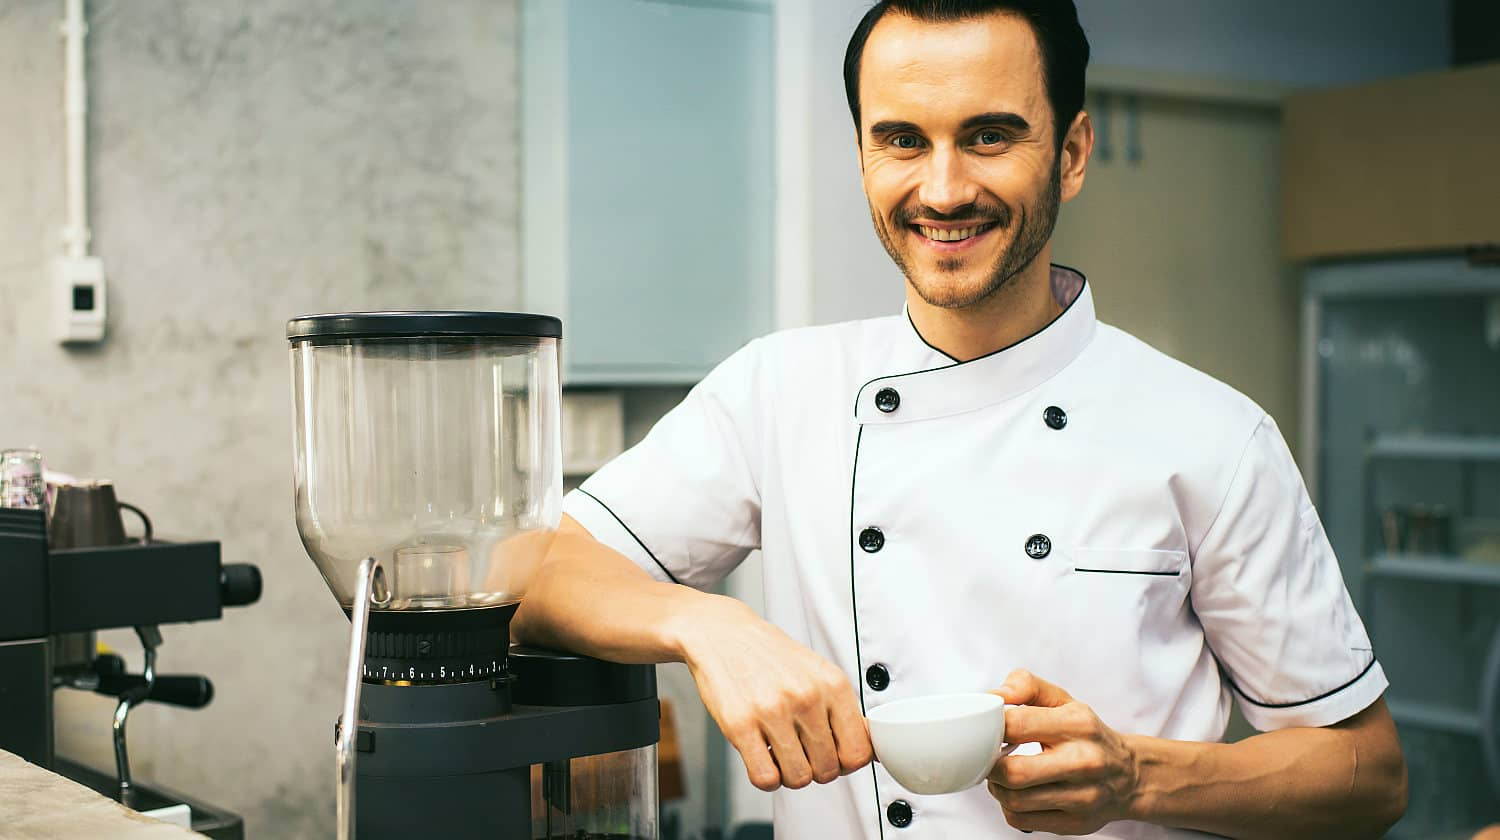 Feature | Chef holding white tea cup | Hey Alexa, Get These 21 Kitchen Appliances On Amazon